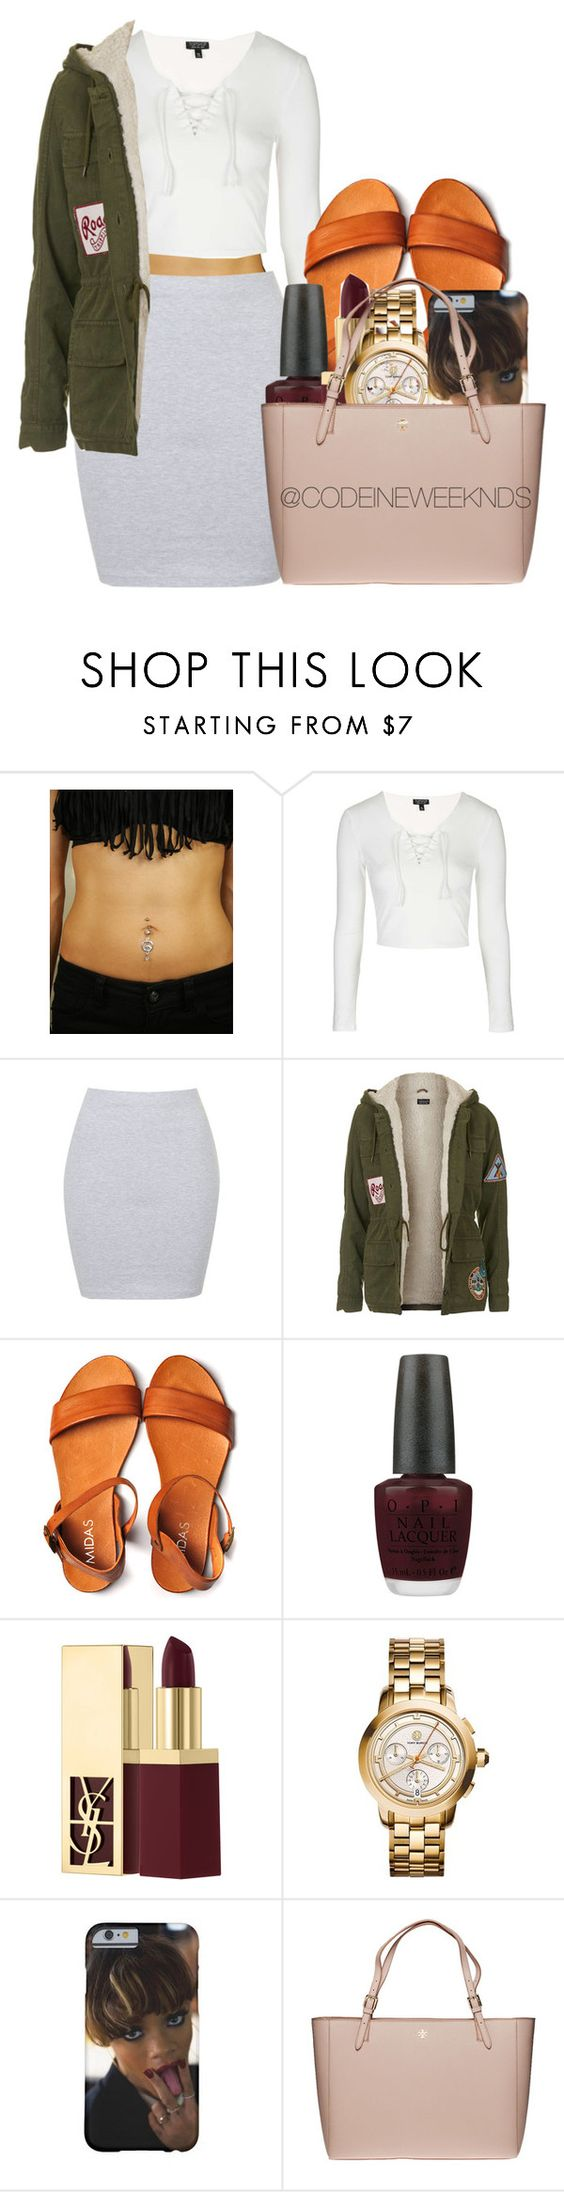 """1/30/16"" by codeineweeknds ❤ liked on Polyvore featuring Topshop, Annie Greenabelle, OPI, Yves Saint Laurent and Tory Burch"